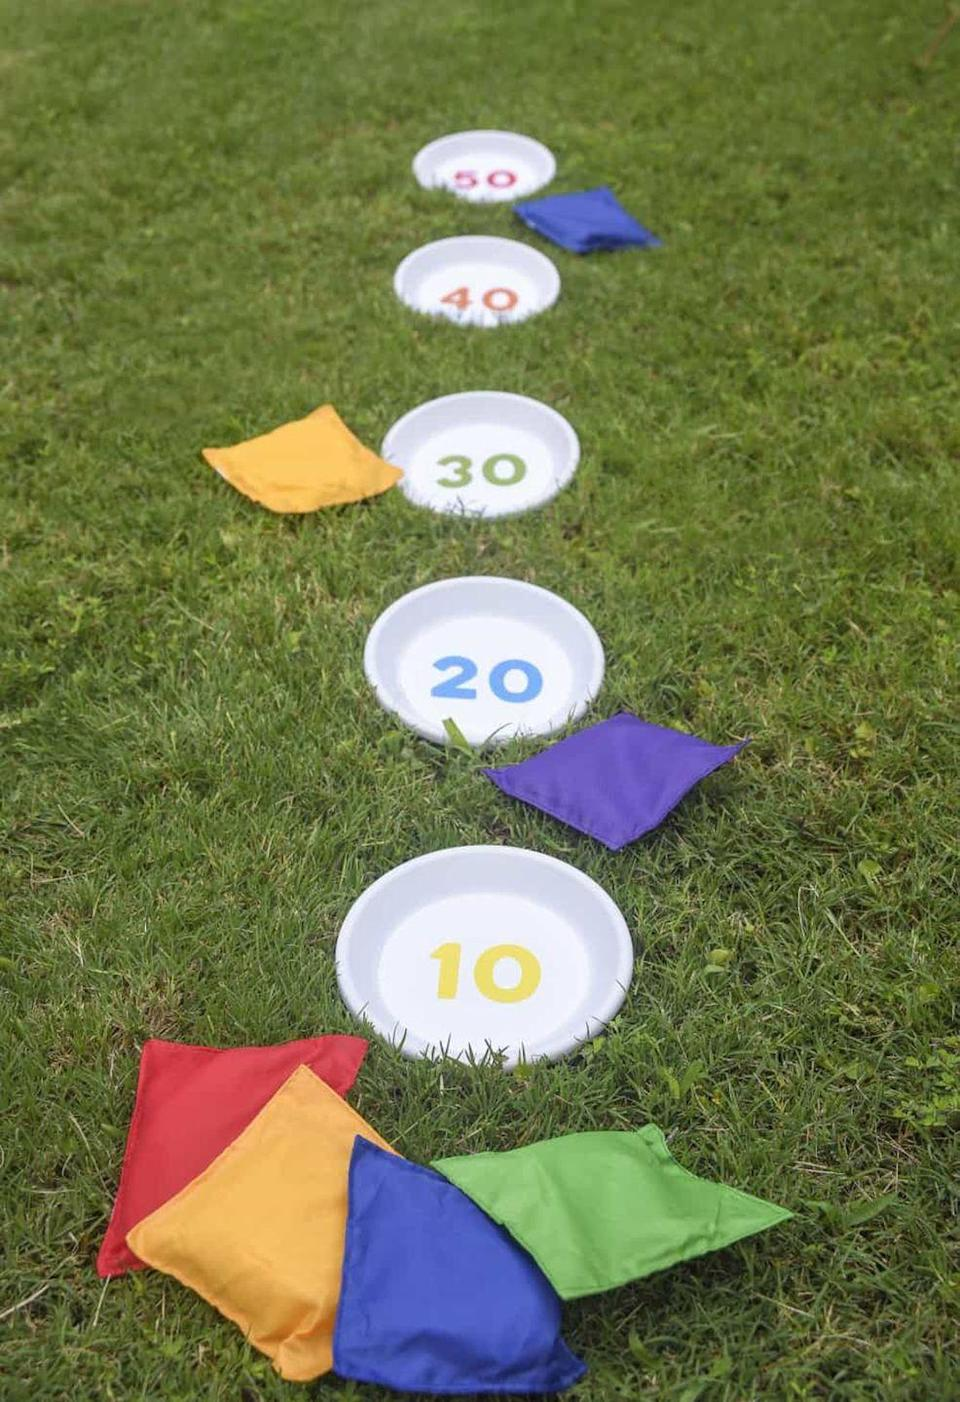 """<p>Blogger Amy offers a free downloadable template so your targets can look colorful and uniform.</p><p><strong>Get the tutorial at <a href=""""https://modpodgerocksblog.com/outdoor-games-diy-bean-bag-toss/"""" rel=""""nofollow noopener"""" target=""""_blank"""" data-ylk=""""slk:Modge Podge Rocks!"""" class=""""link rapid-noclick-resp"""">Modge Podge Rocks!</a></strong></p><p><strong><a class=""""link rapid-noclick-resp"""" href=""""https://www.amazon.com/Round-Plastic-Plant-Saucer-Units/dp/B01GVUU034?tag=syn-yahoo-20&ascsubtag=%5Bartid%7C10050.g.21095894%5Bsrc%7Cyahoo-us"""" rel=""""nofollow noopener"""" target=""""_blank"""" data-ylk=""""slk:SHOP CLAY POT SAUCERS"""">SHOP CLAY POT SAUCERS</a></strong></p>"""